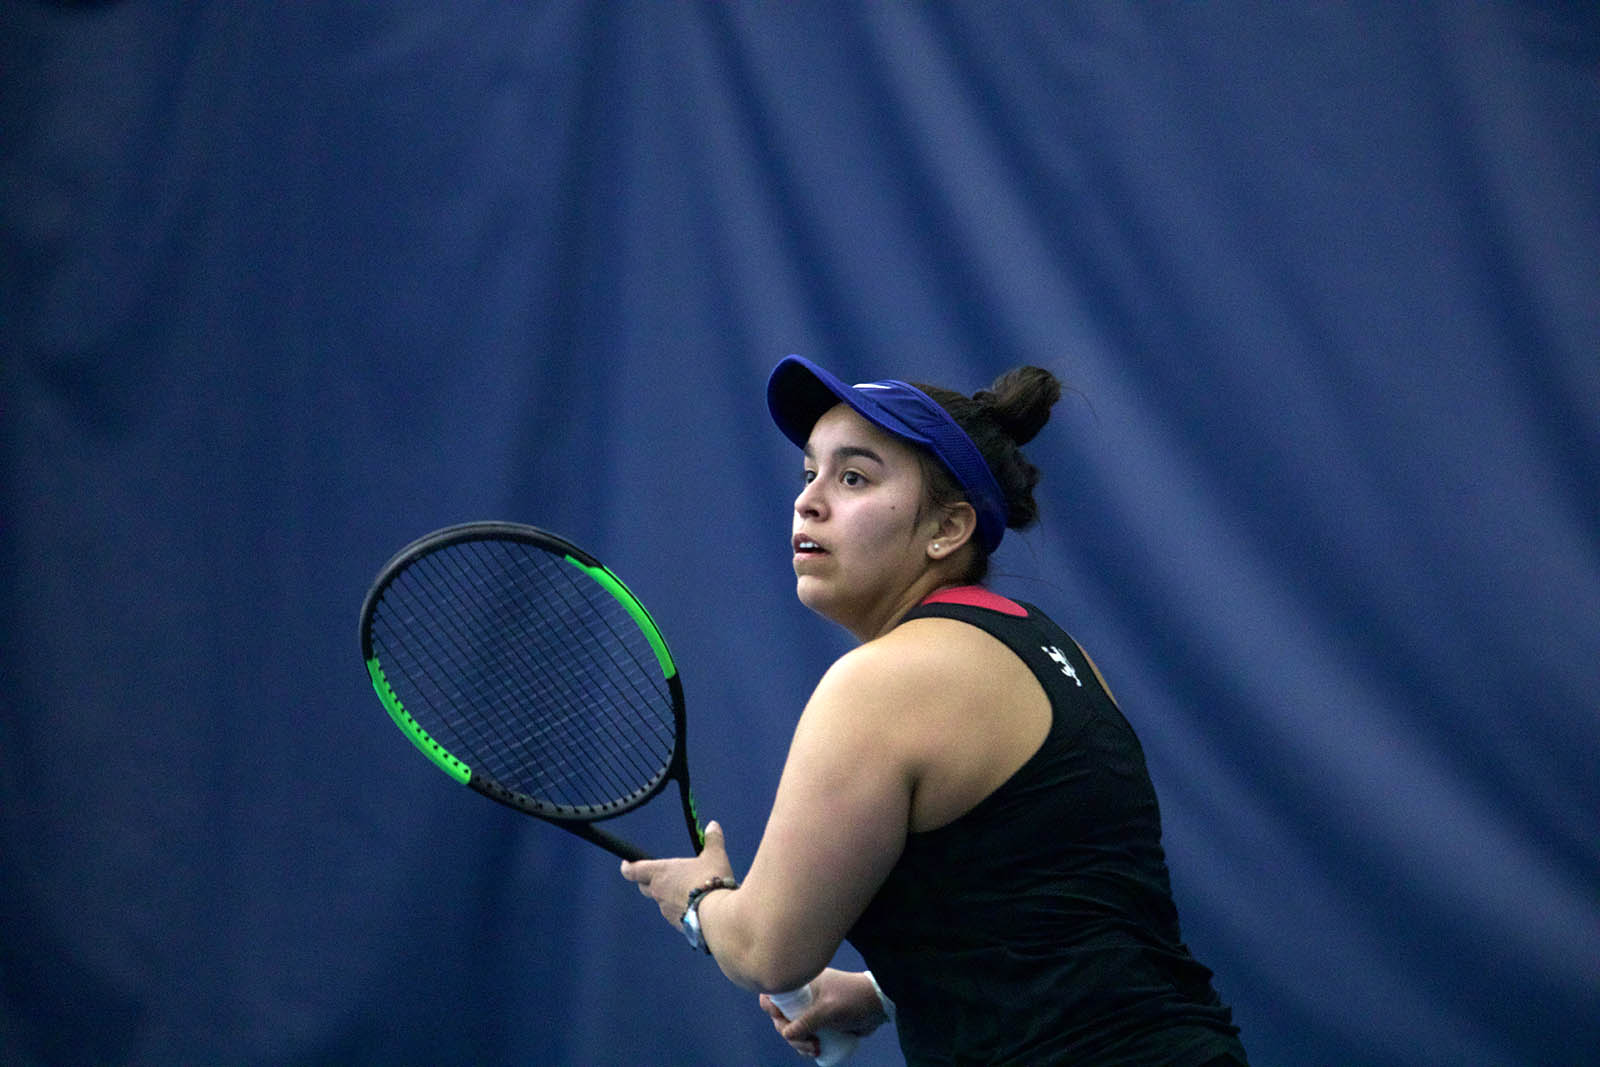 Sabrina Barboza holds a tennis racket during a game with a blue curtain in the background.